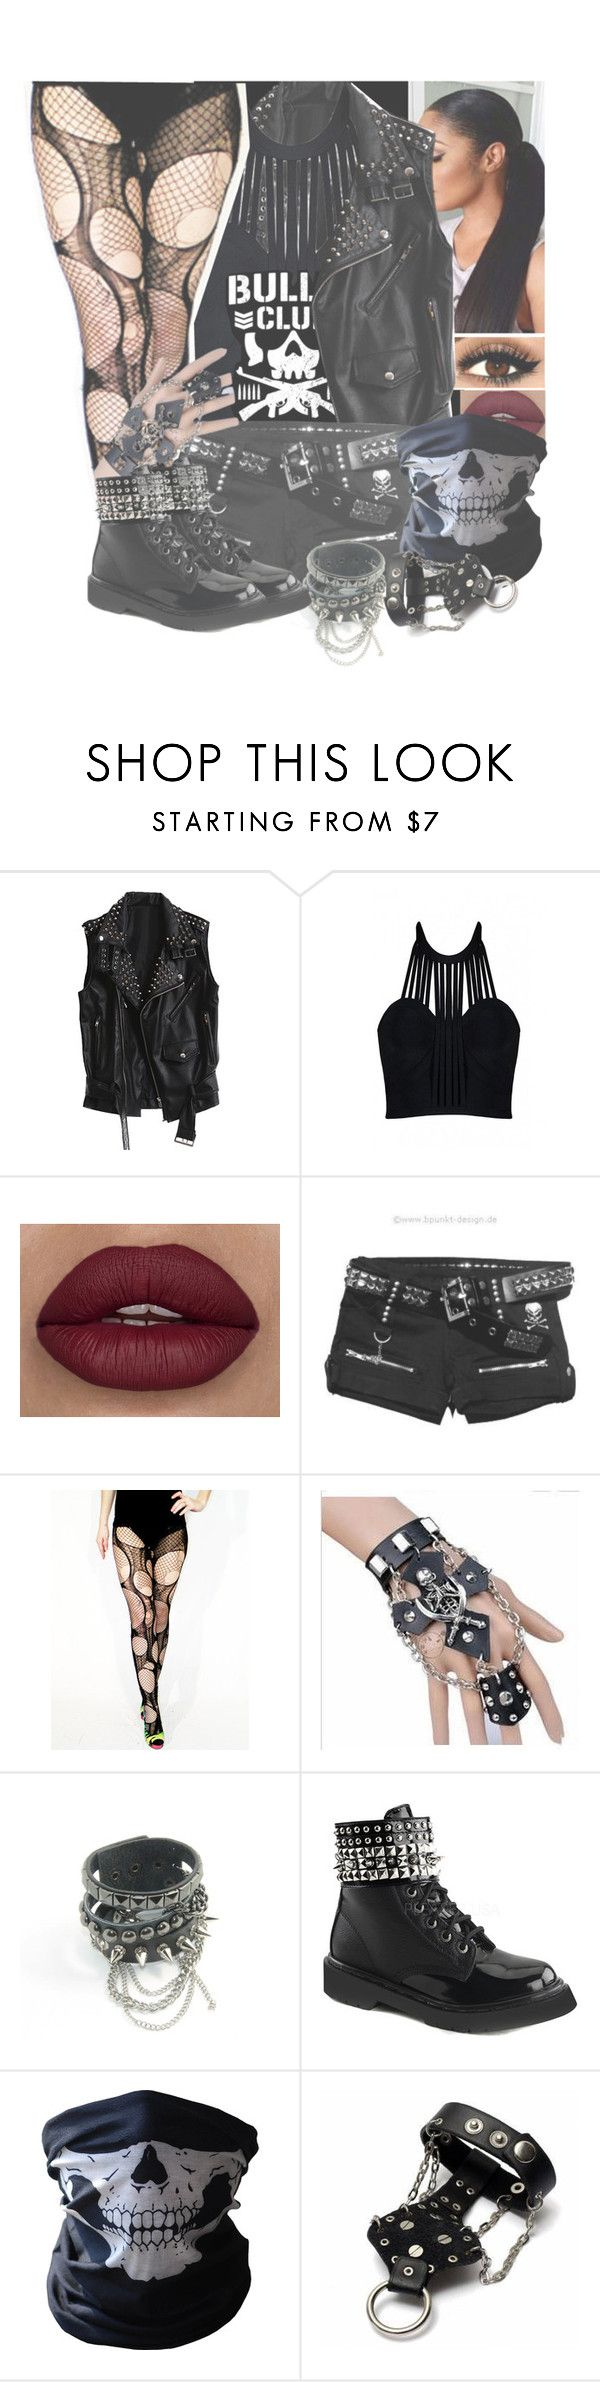 """✖Bullet Club Member✖"" by basket-case47 ❤ liked on Polyvore featuring Posh Girl, Diane Von Furstenberg, Trend Cool, Demonia and BUFF"